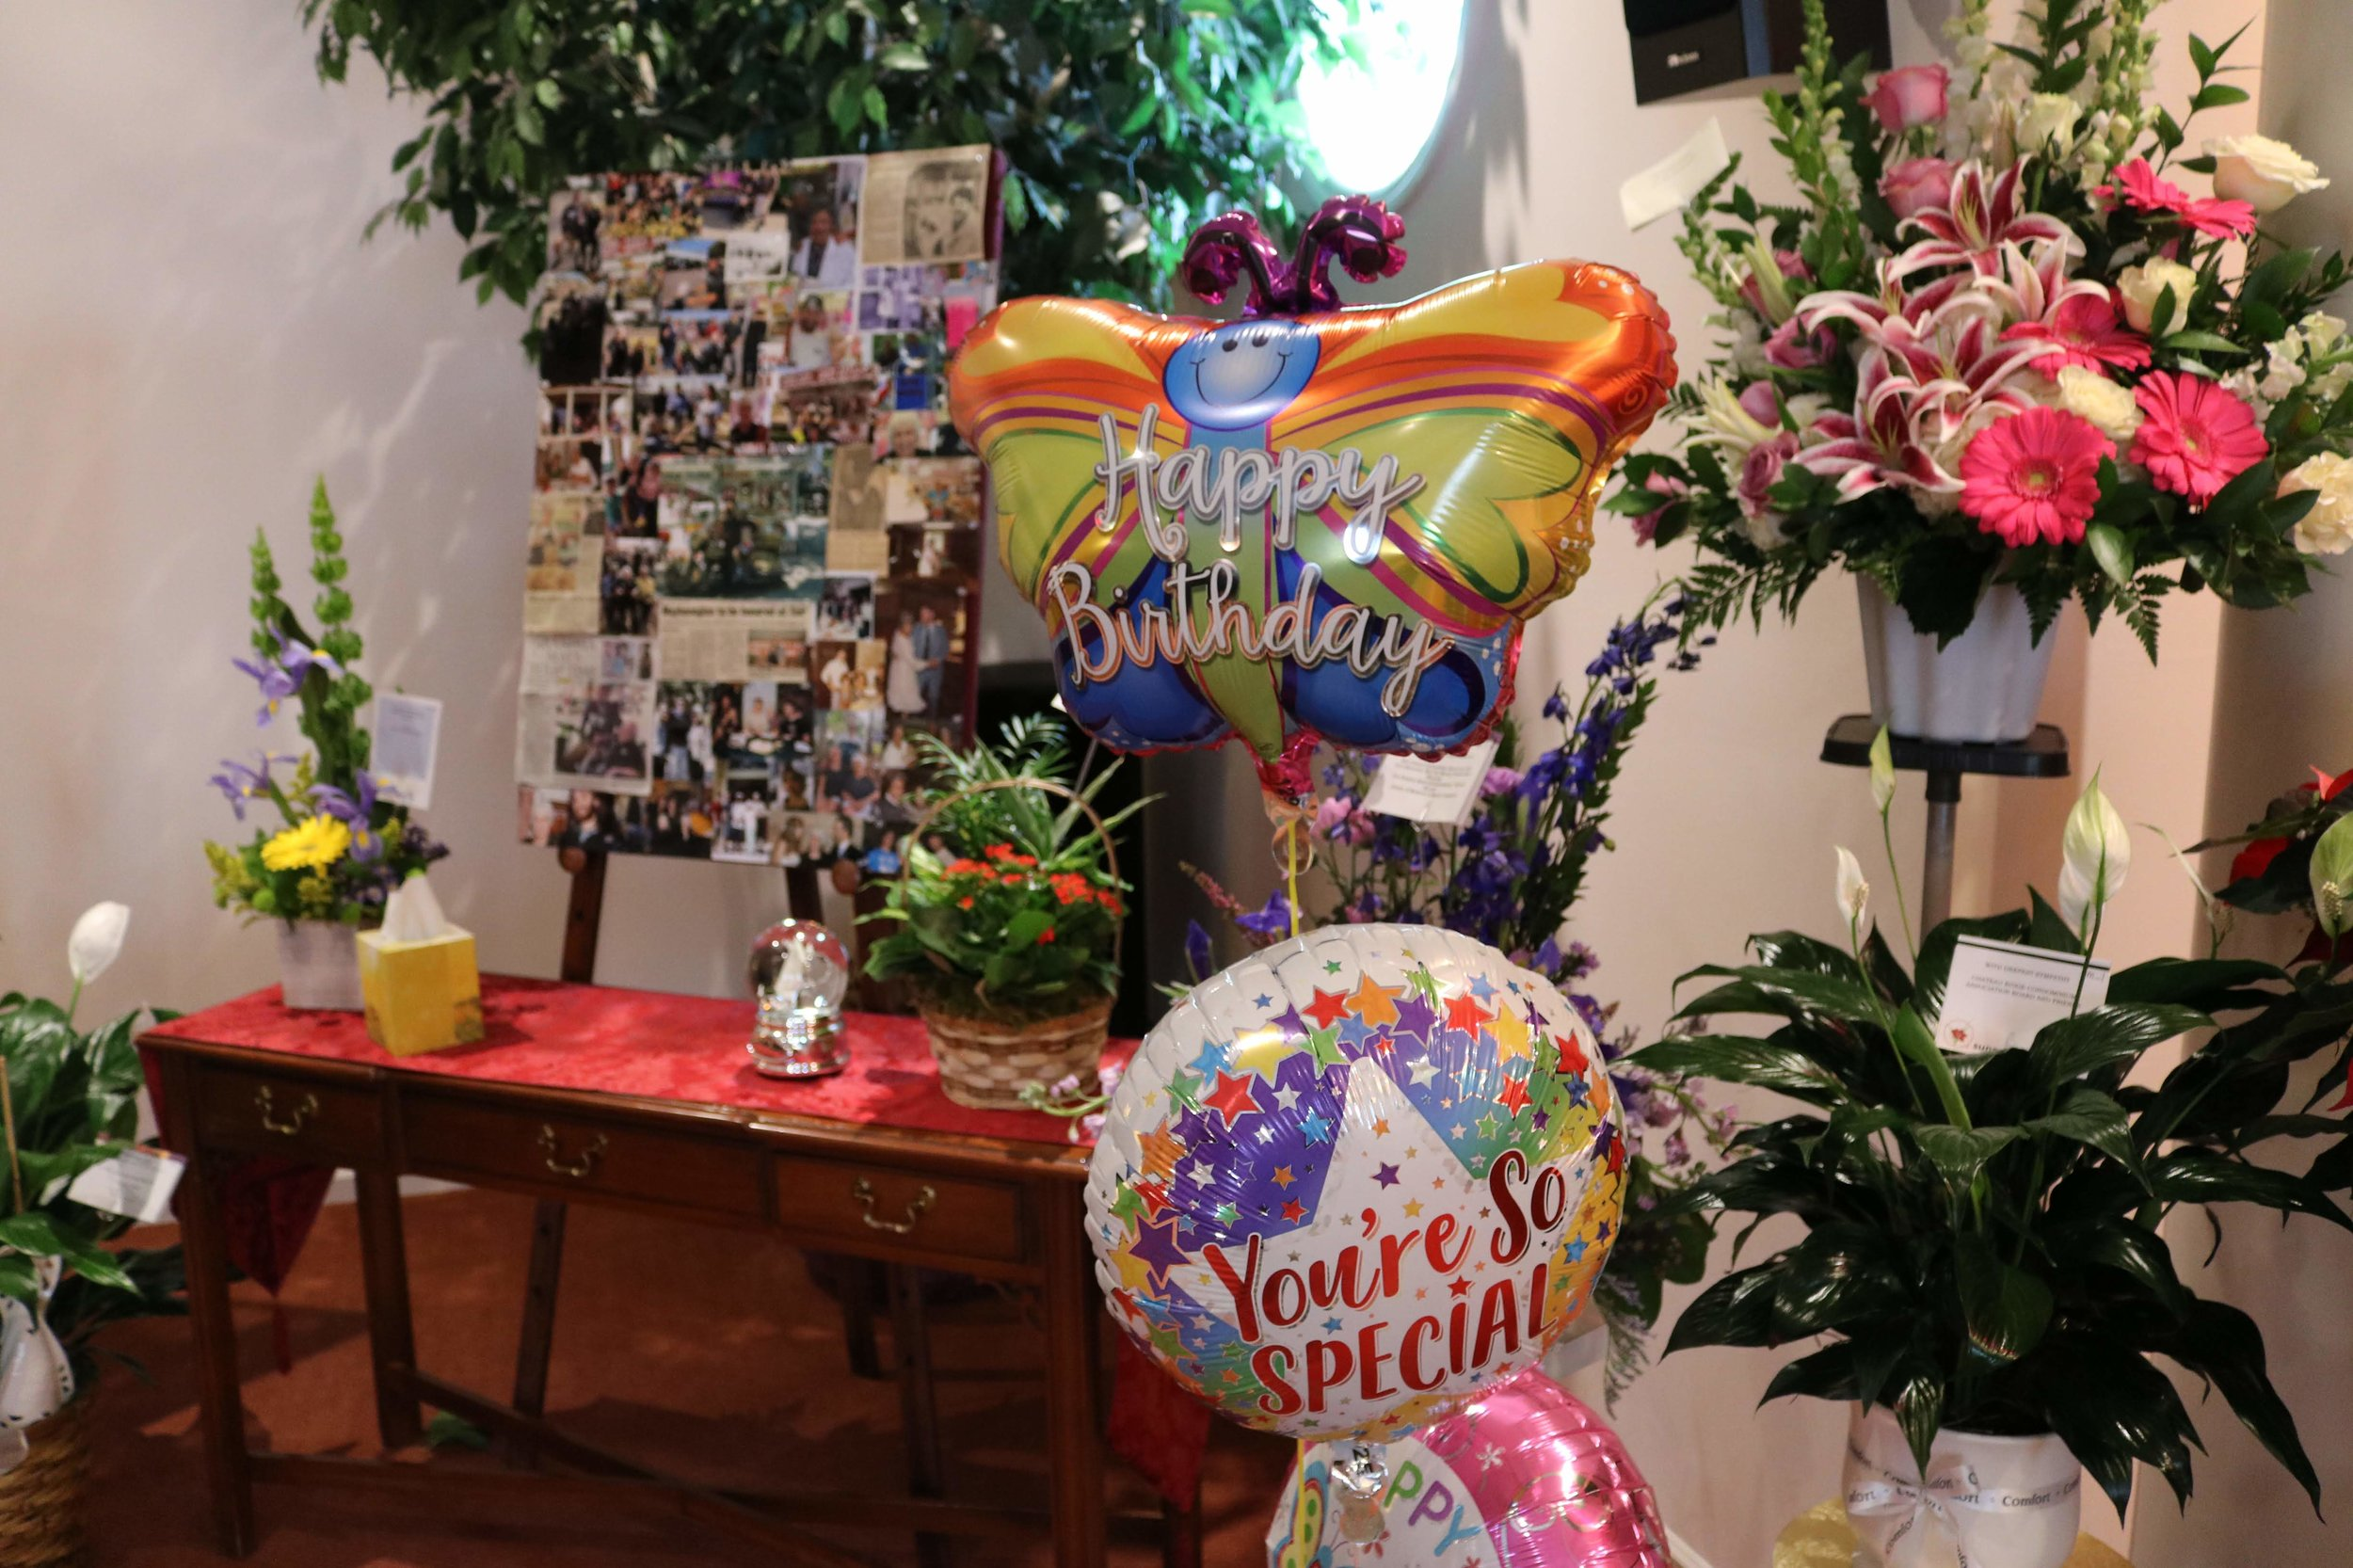 Clara's 90th birthday was the same day as her celebration of life service.